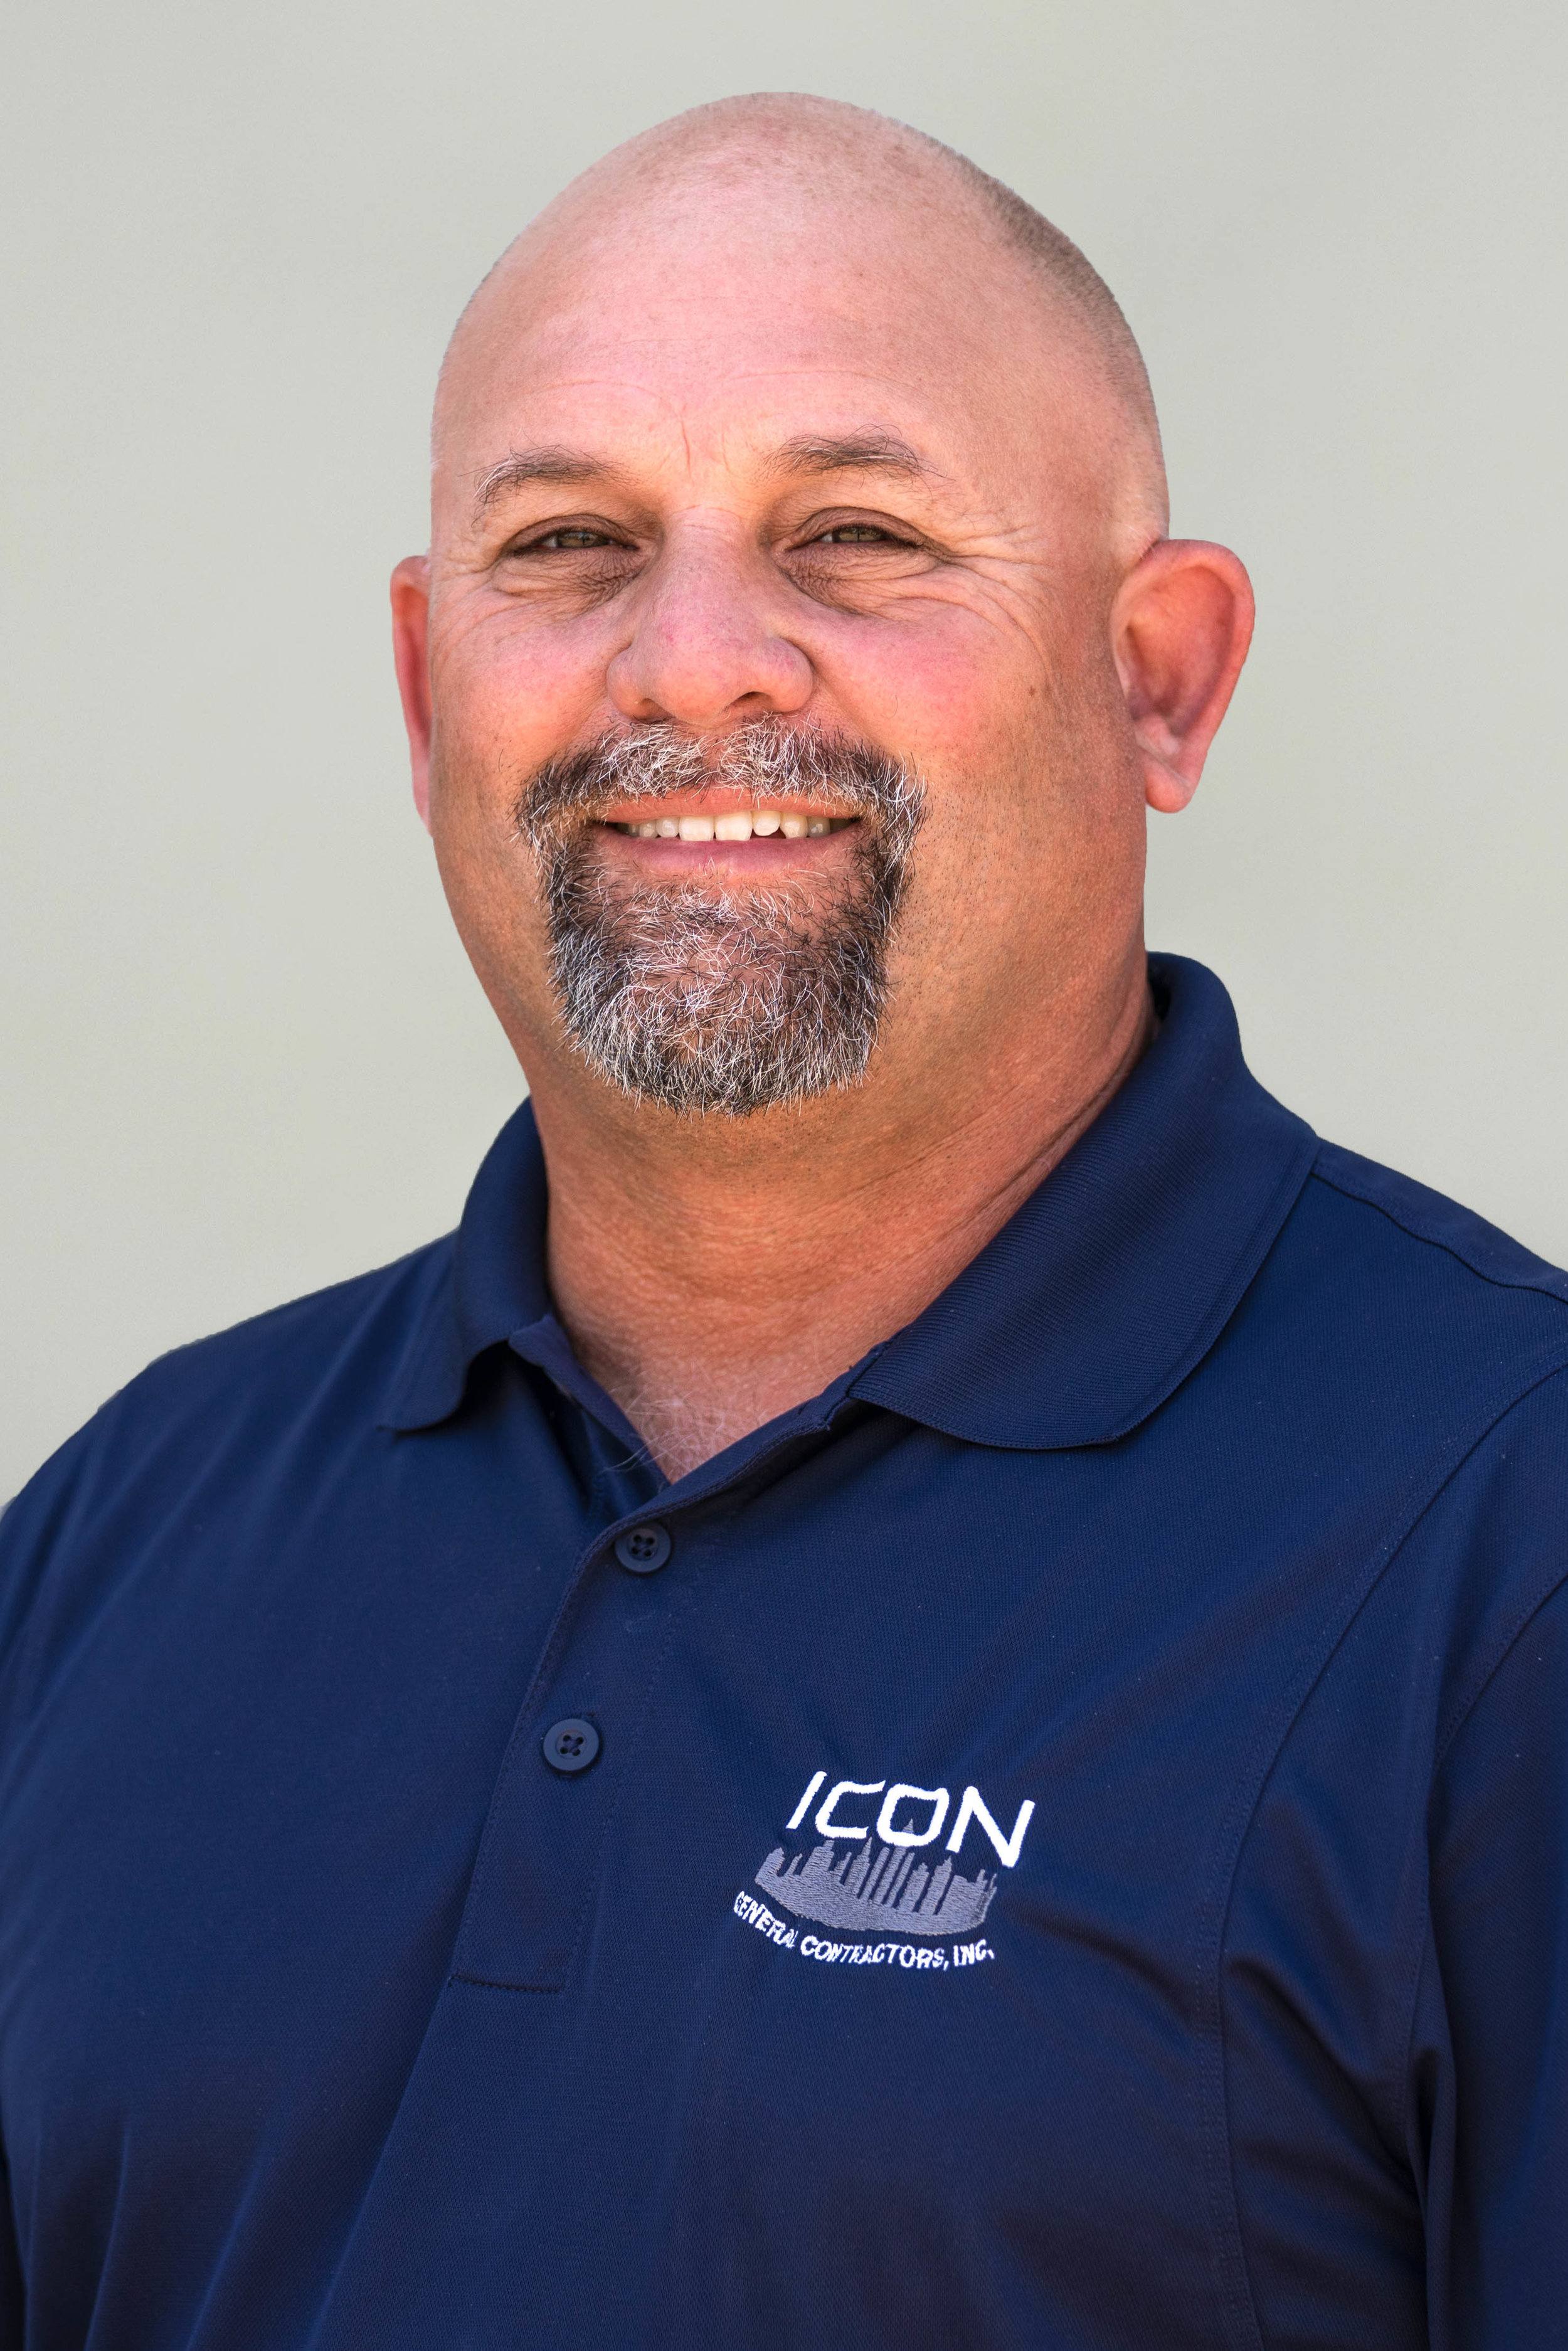 Roger Tarin - Regional Construction Manager707-536-9859 – Direct916-224-3213 – Cellroger@icongc.com